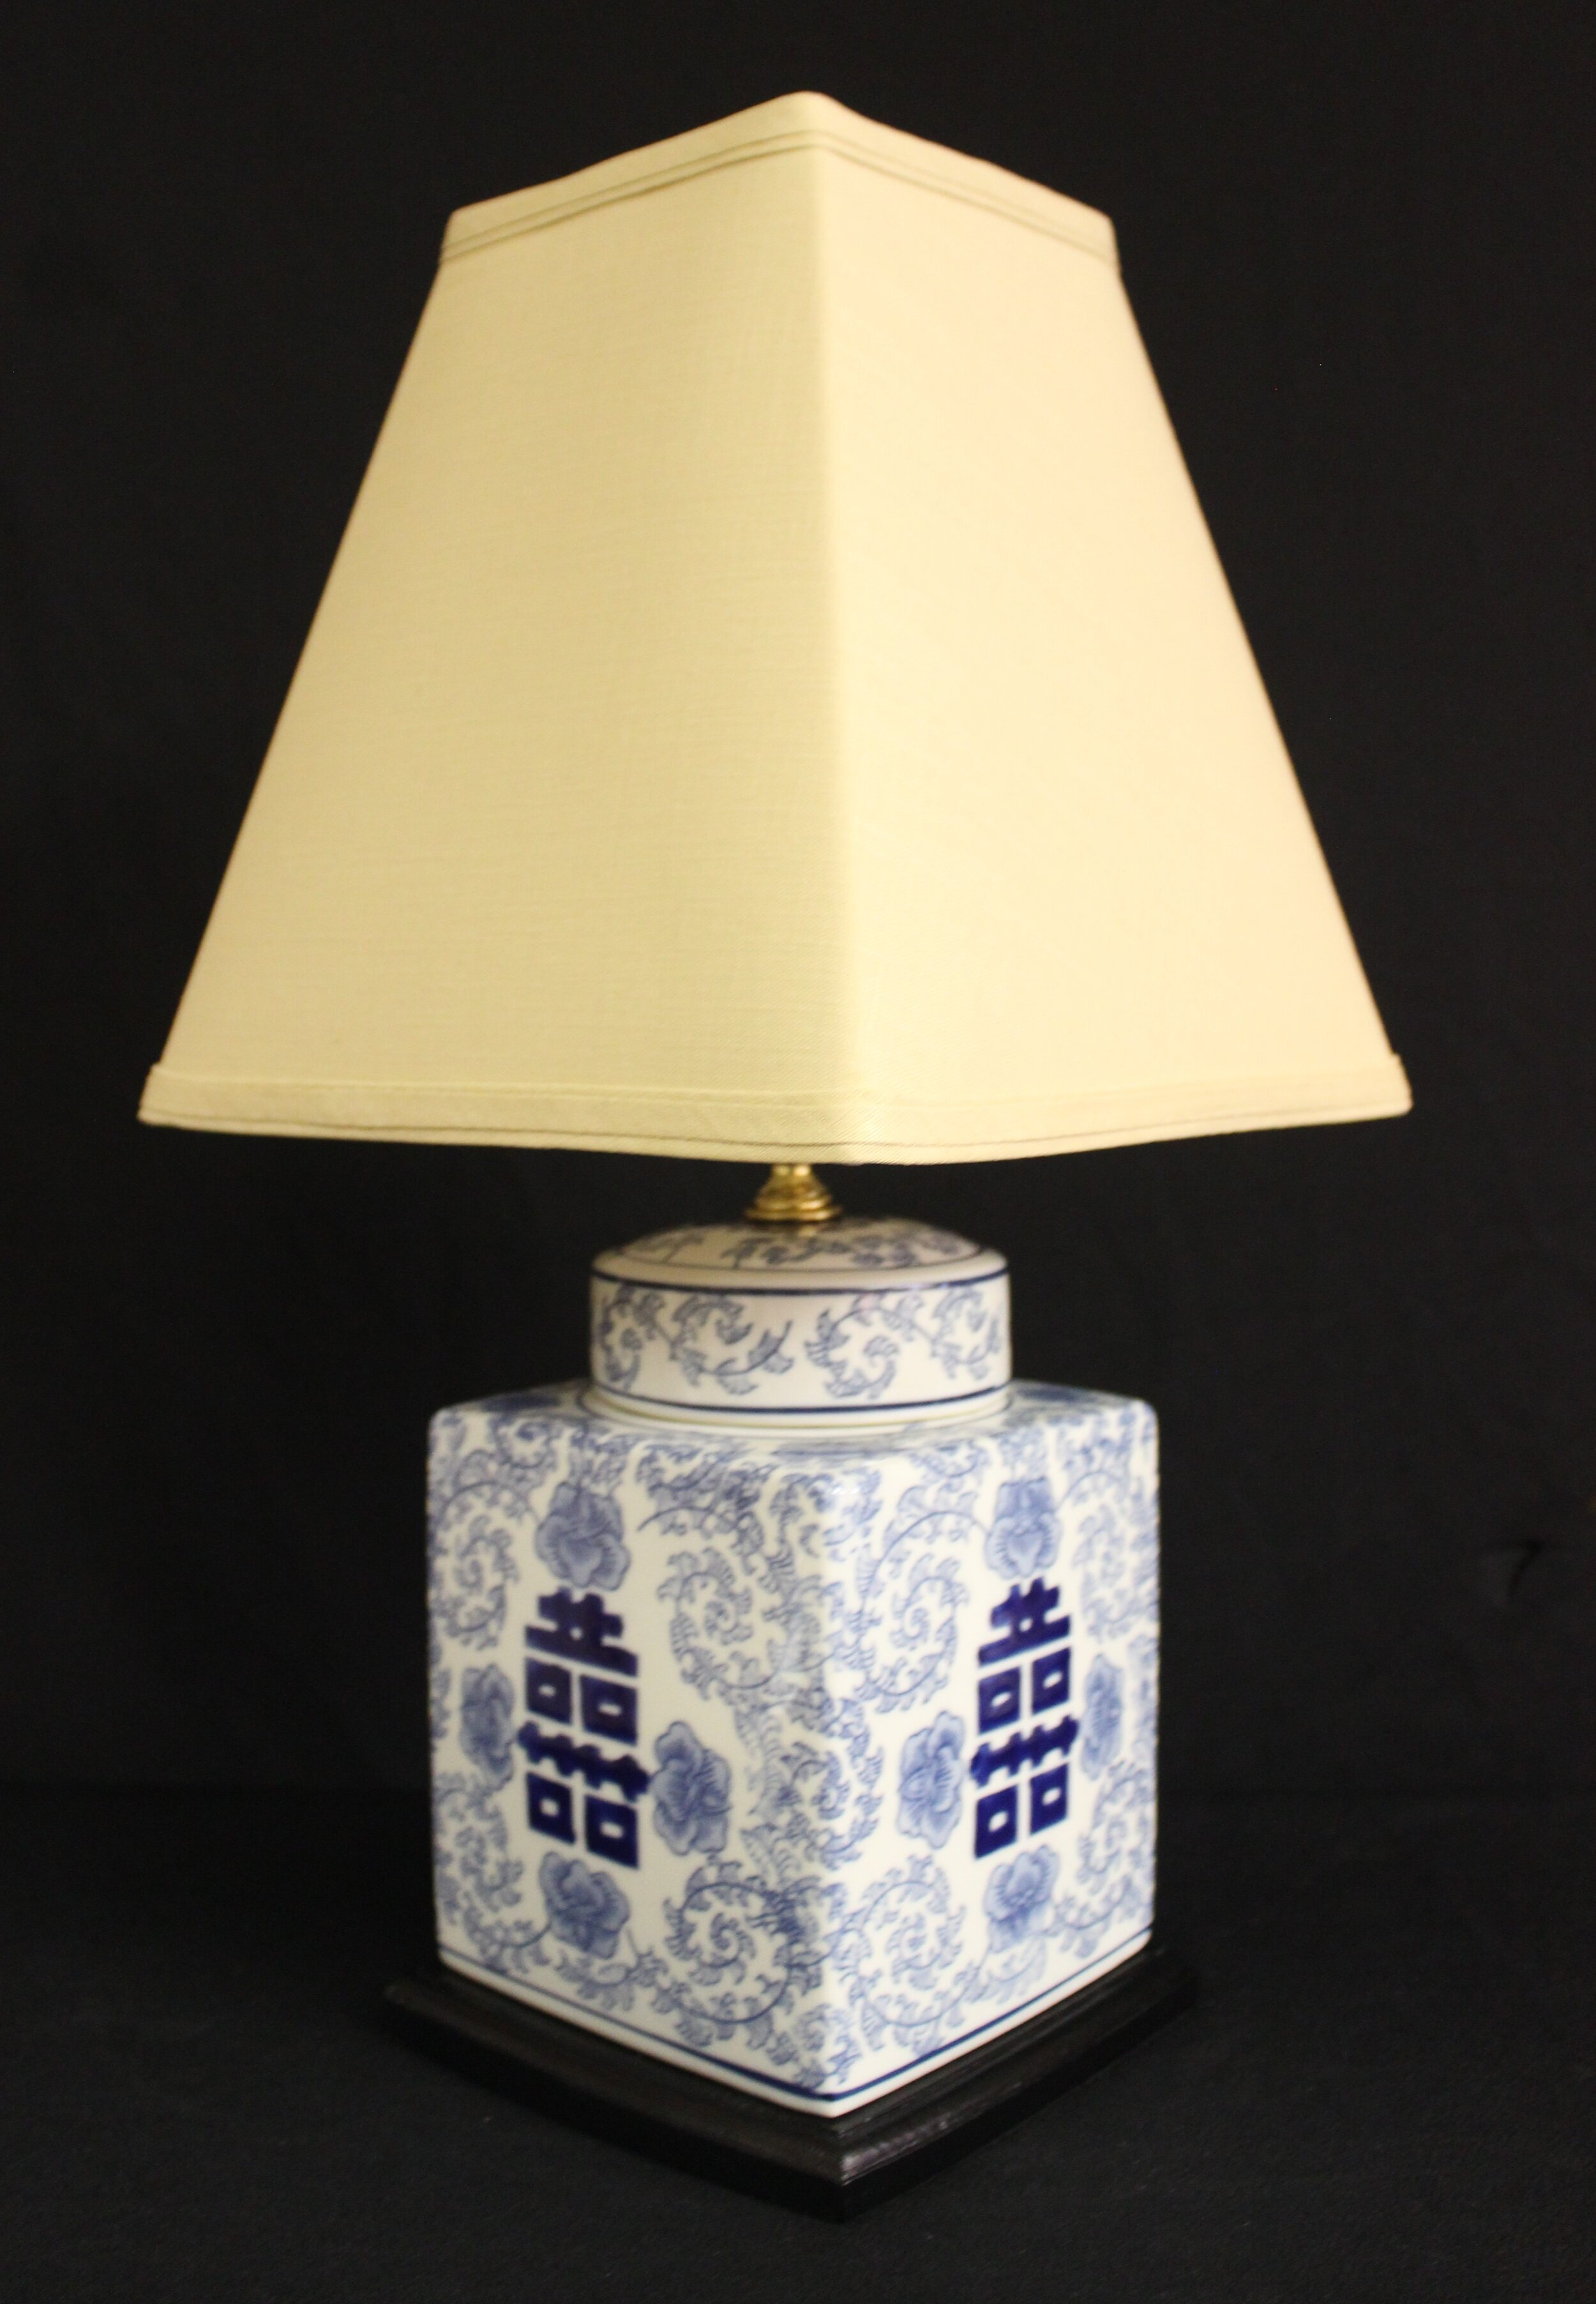 Square Blue & White Cannister Lamp. Shown with Lampshade option: #600 Beige Linen